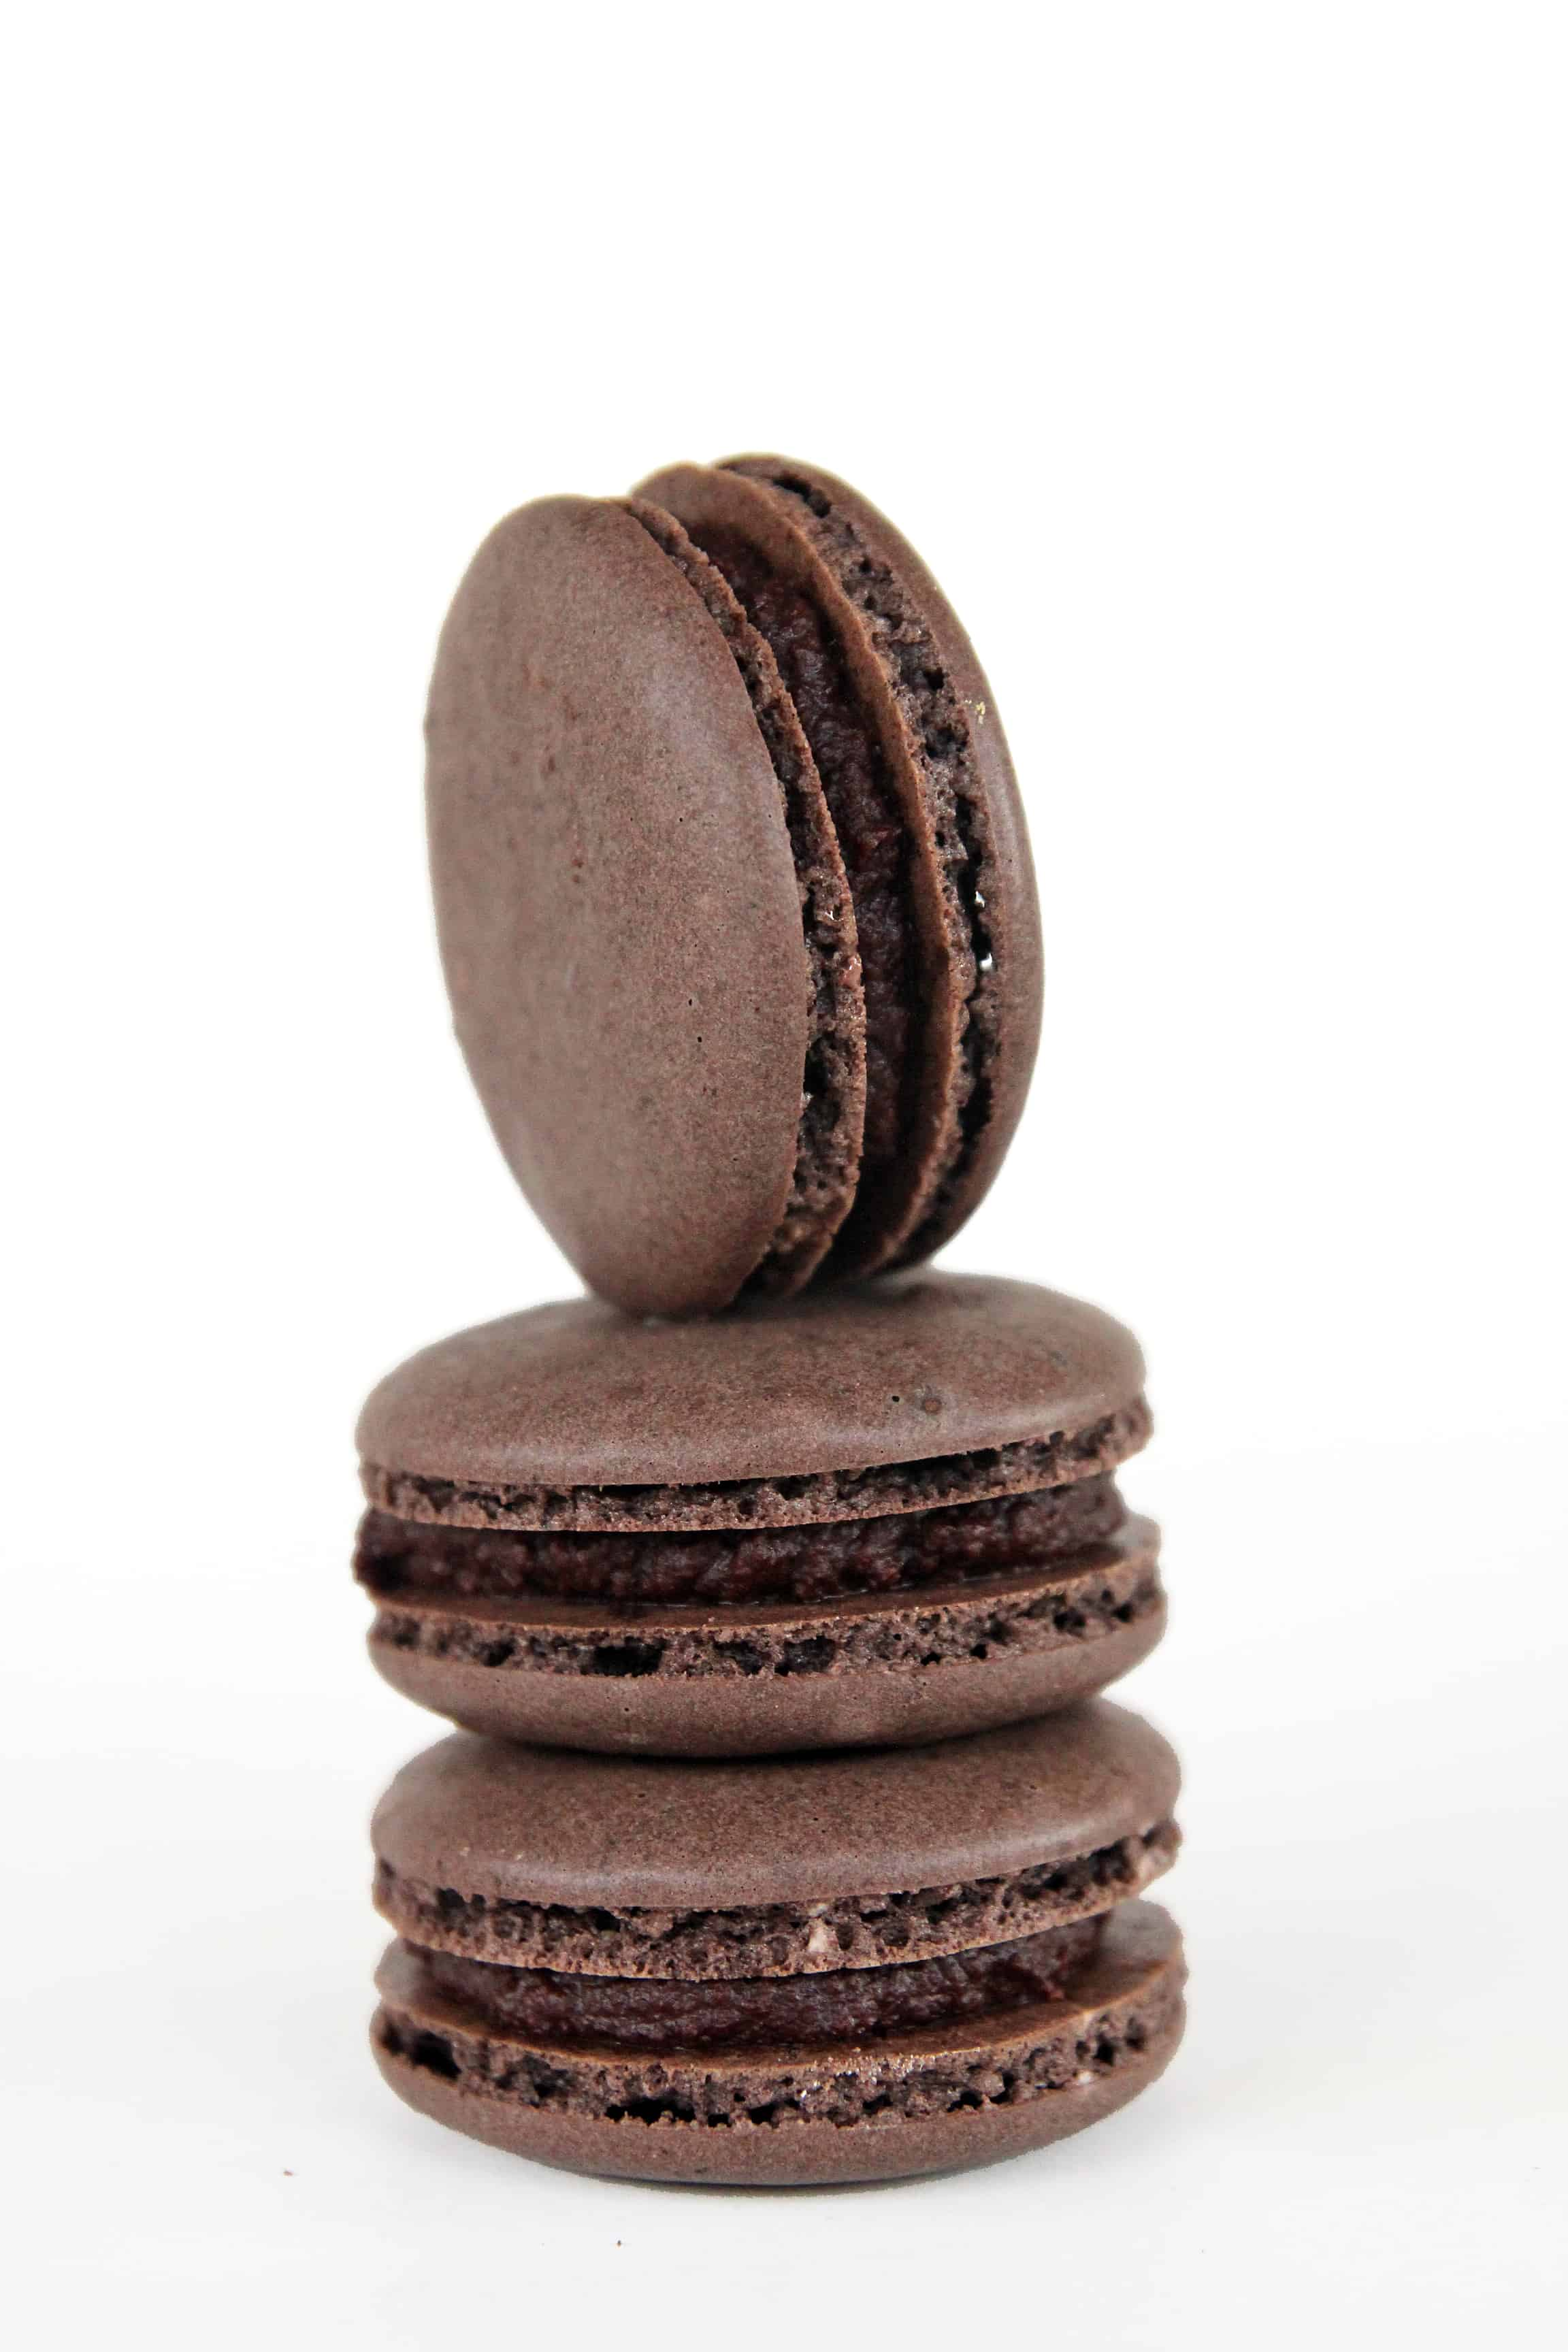 Chocolate-Filled Chocolate Macarons (The French Way ...